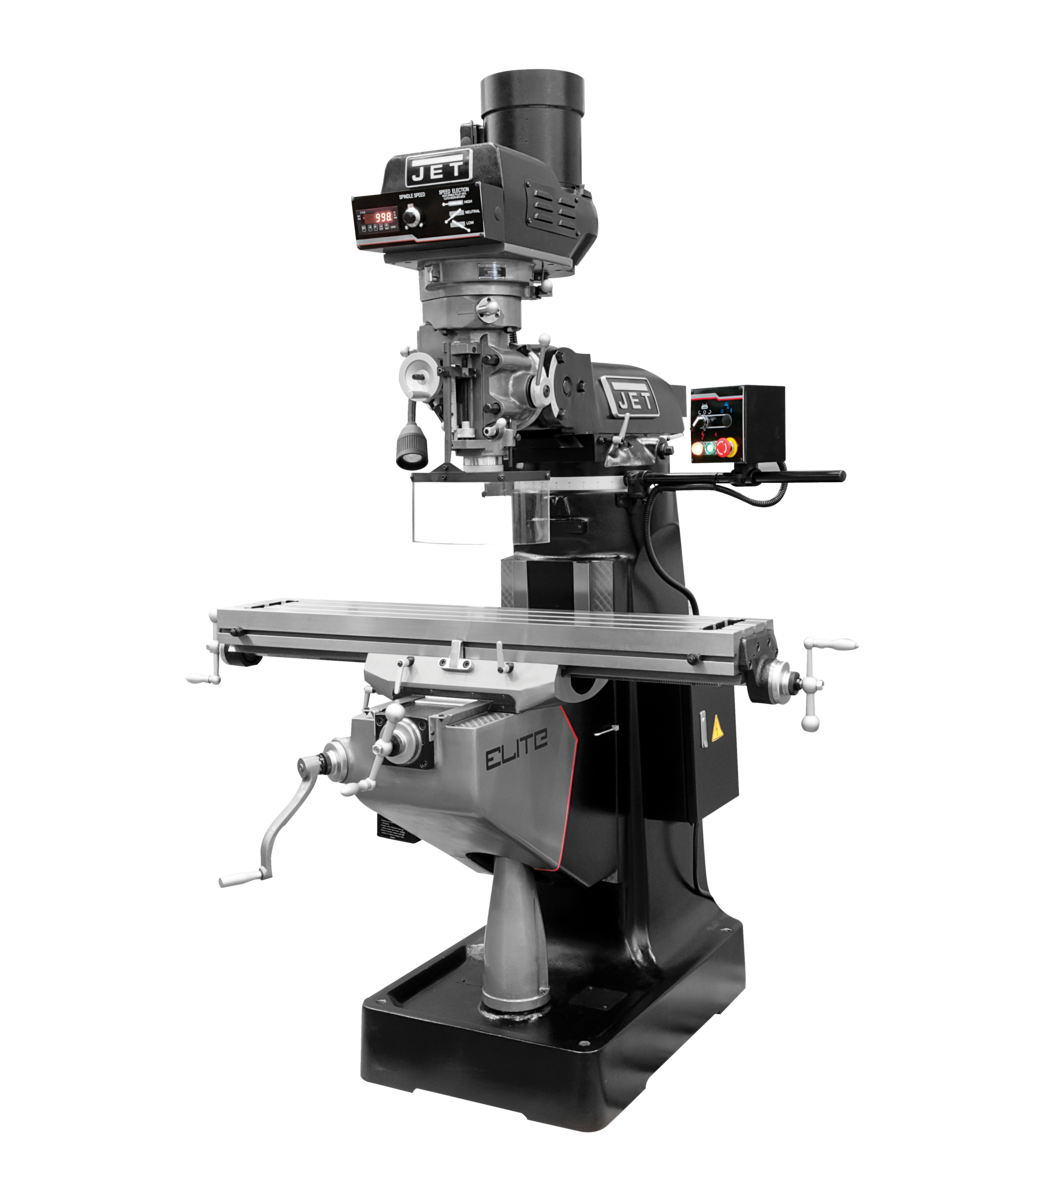 EVS-949 Mill with 2-Axis Newall DP700 DRO and X, Y, Z-Axis JET Powerfeeds and USA Made Air Draw Bar